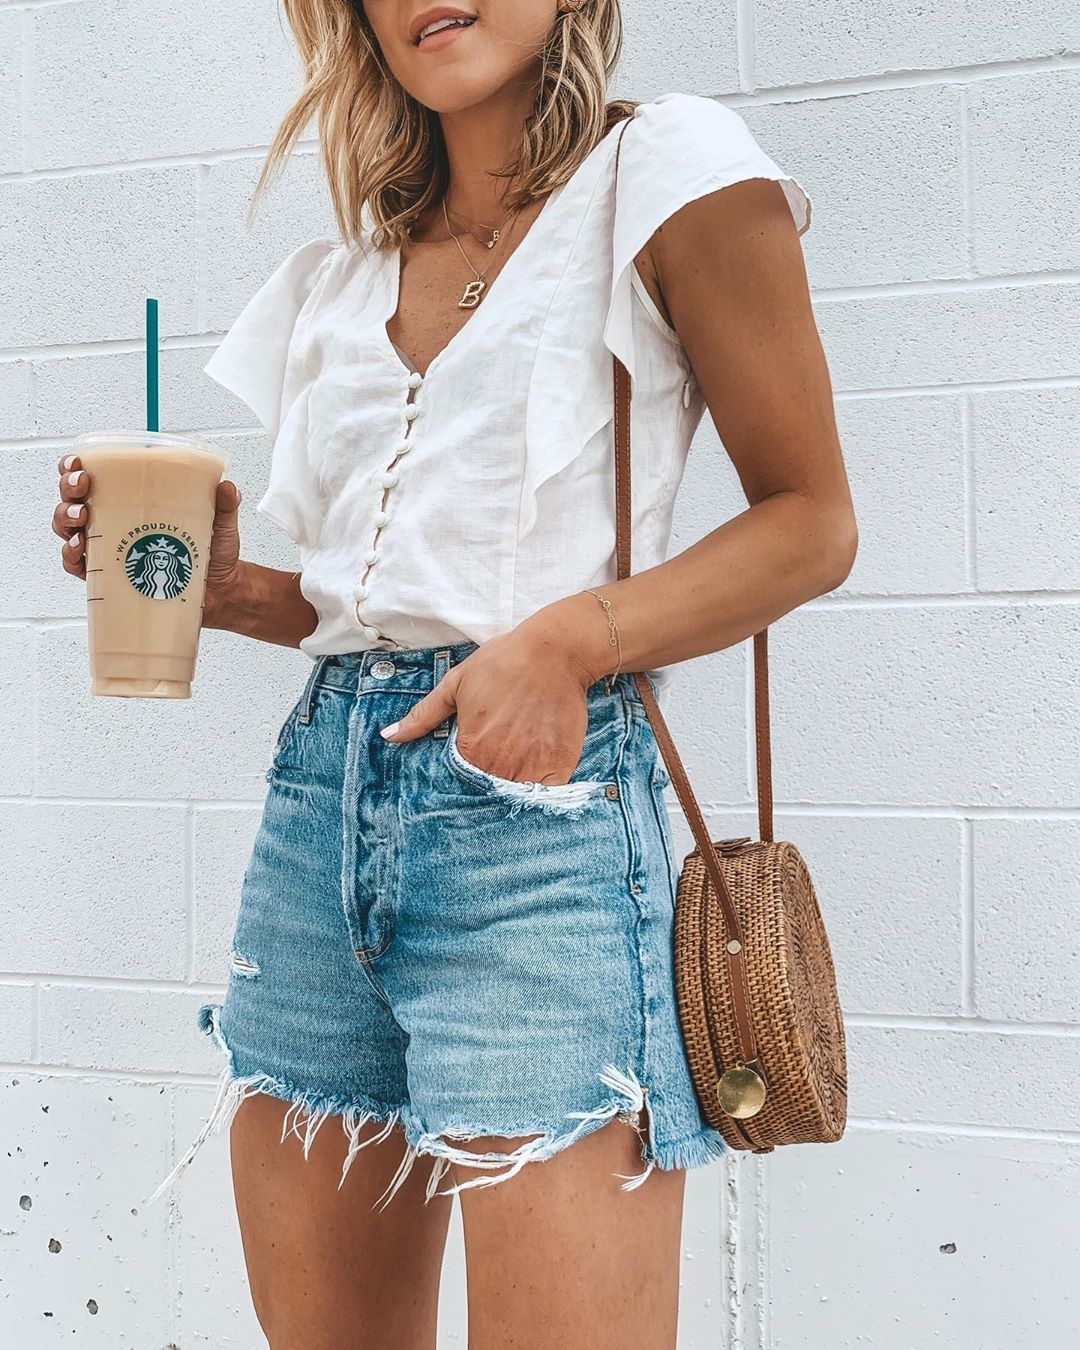 "Becky Hillyard // Cella Jane on Instagram: ""Weekend ready. 🖤☕️ I'm wearing my favorite denim jeans shorts- love the flattering high waist fit and they cover your bum🙌🏻 ps- my top is…"""